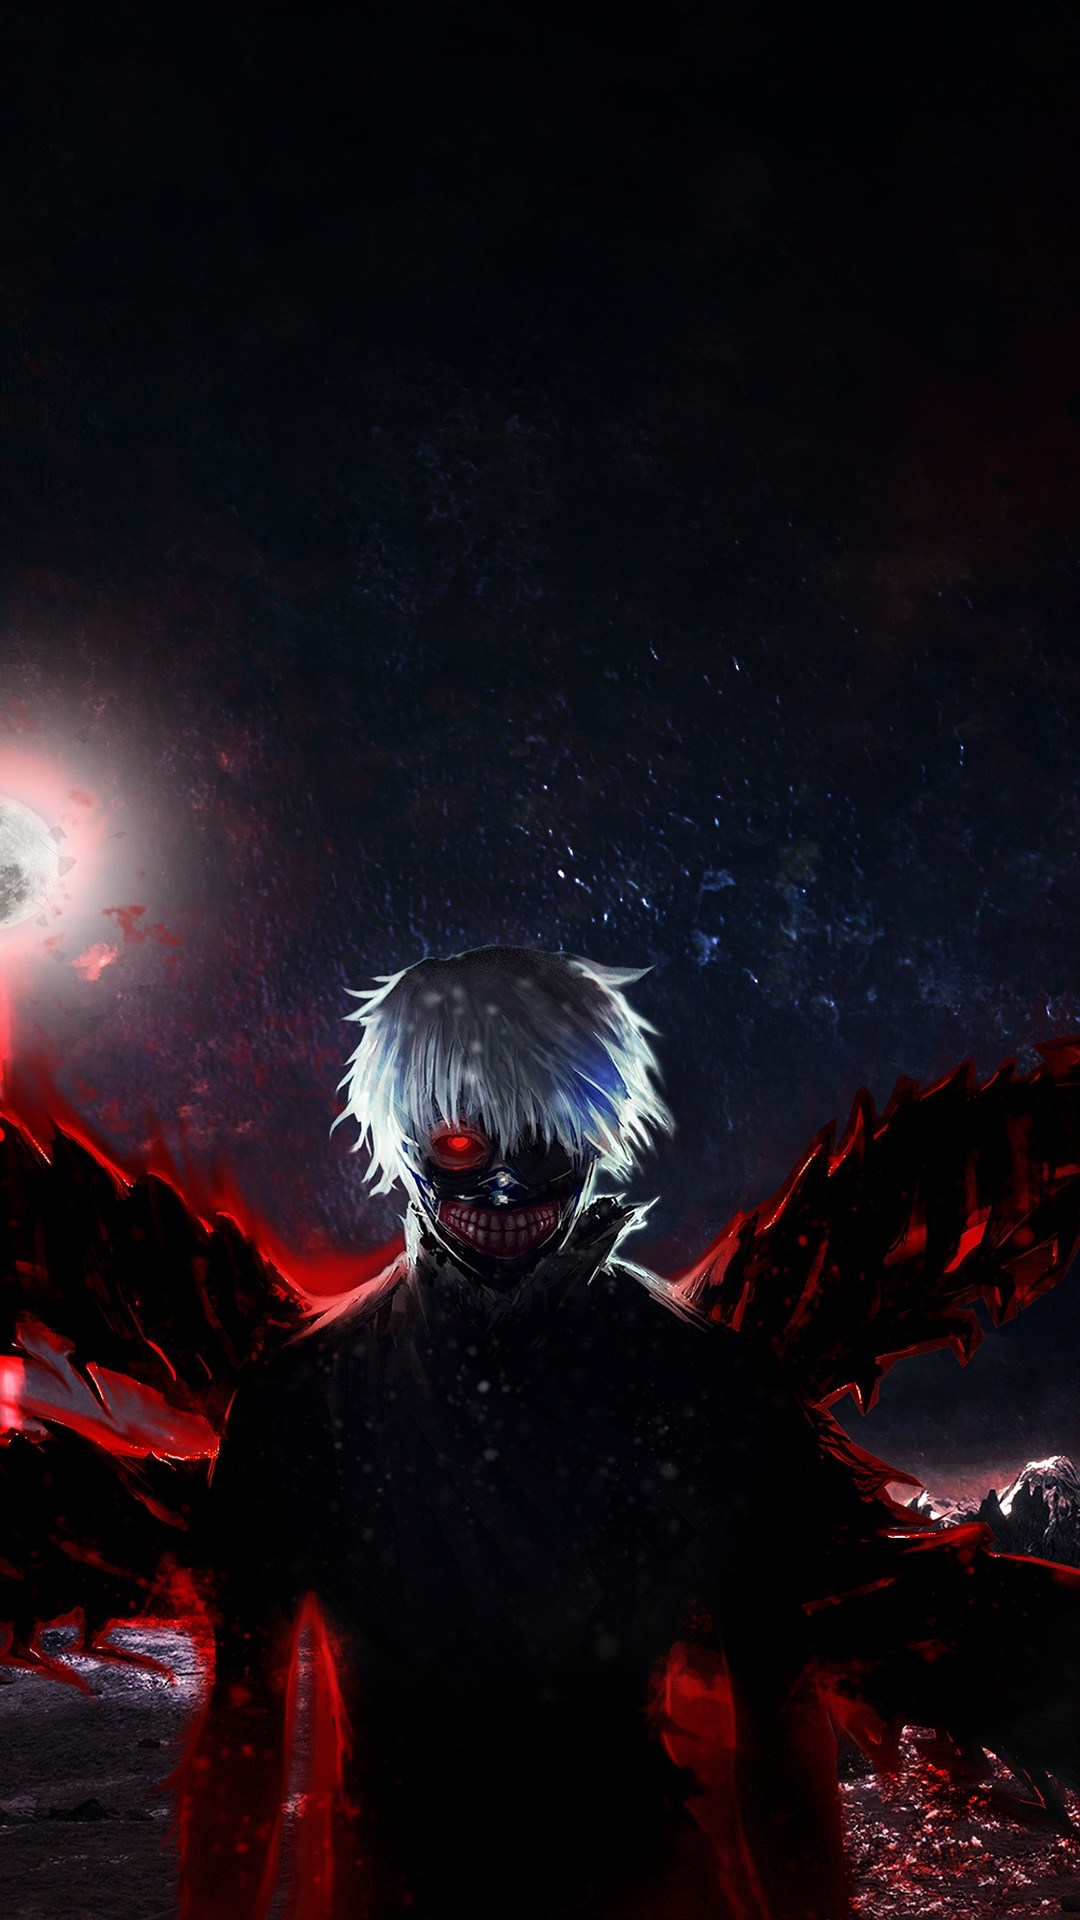 A collection of the top 48 tokyo ghoul live wallpapers and backgrounds available for download for free. Tokyo Ghoul Live Wallpaper - Free Home Wallpaper HD Collection